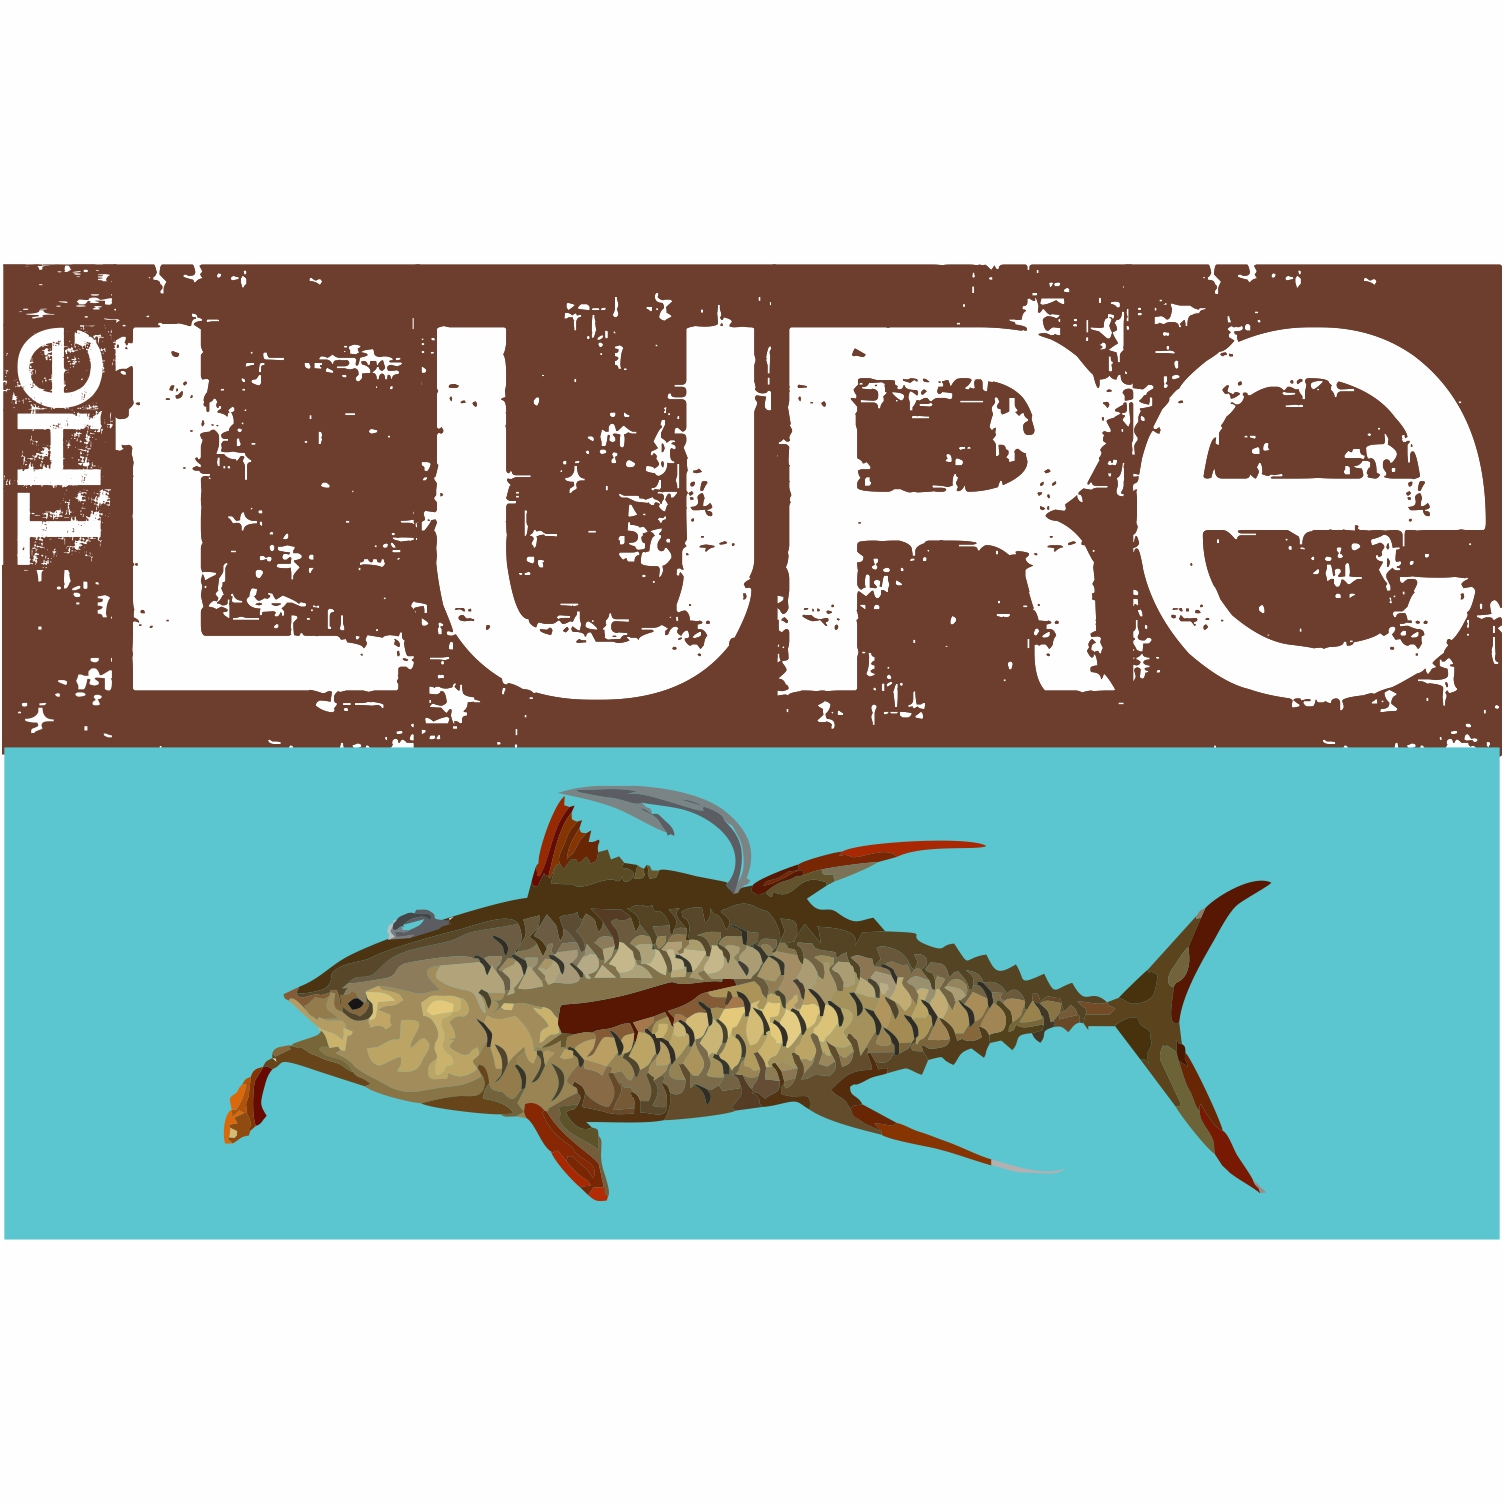 Design The Lure